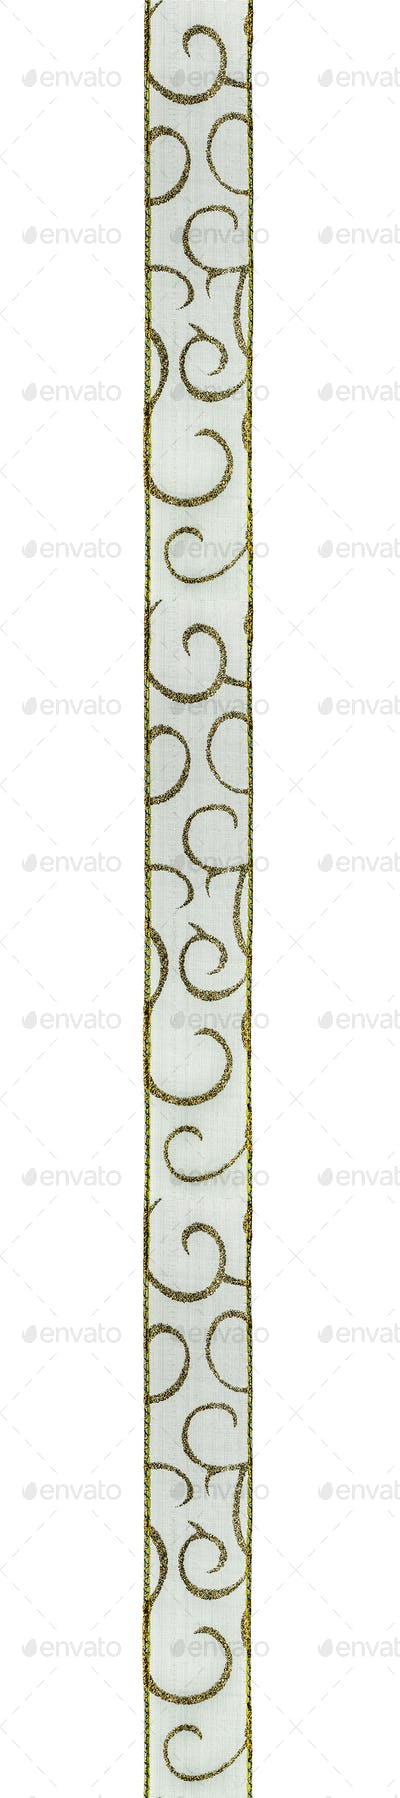 Green ribbon for a festive decor, isolated on a white background